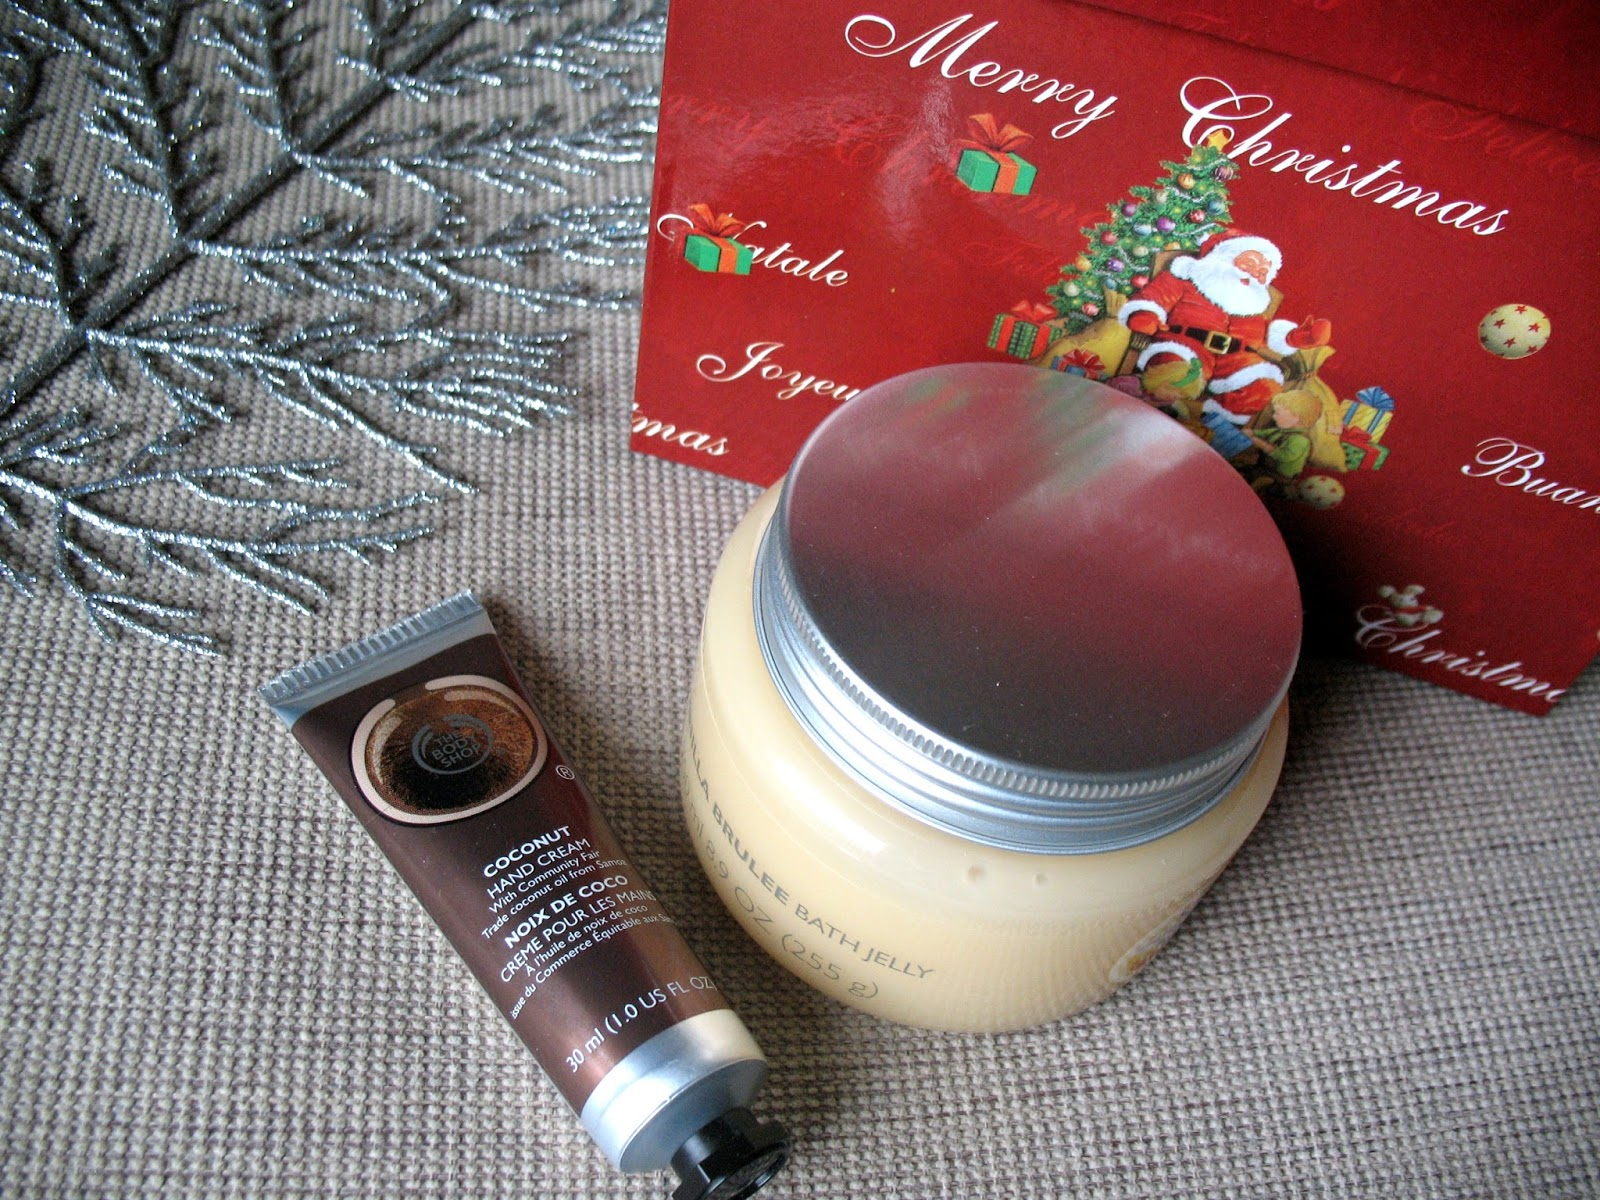 The_body_shop_vanilla_brulee_bath_jelly_coconut_hand_cream_review_beauty_blogger_photo_01